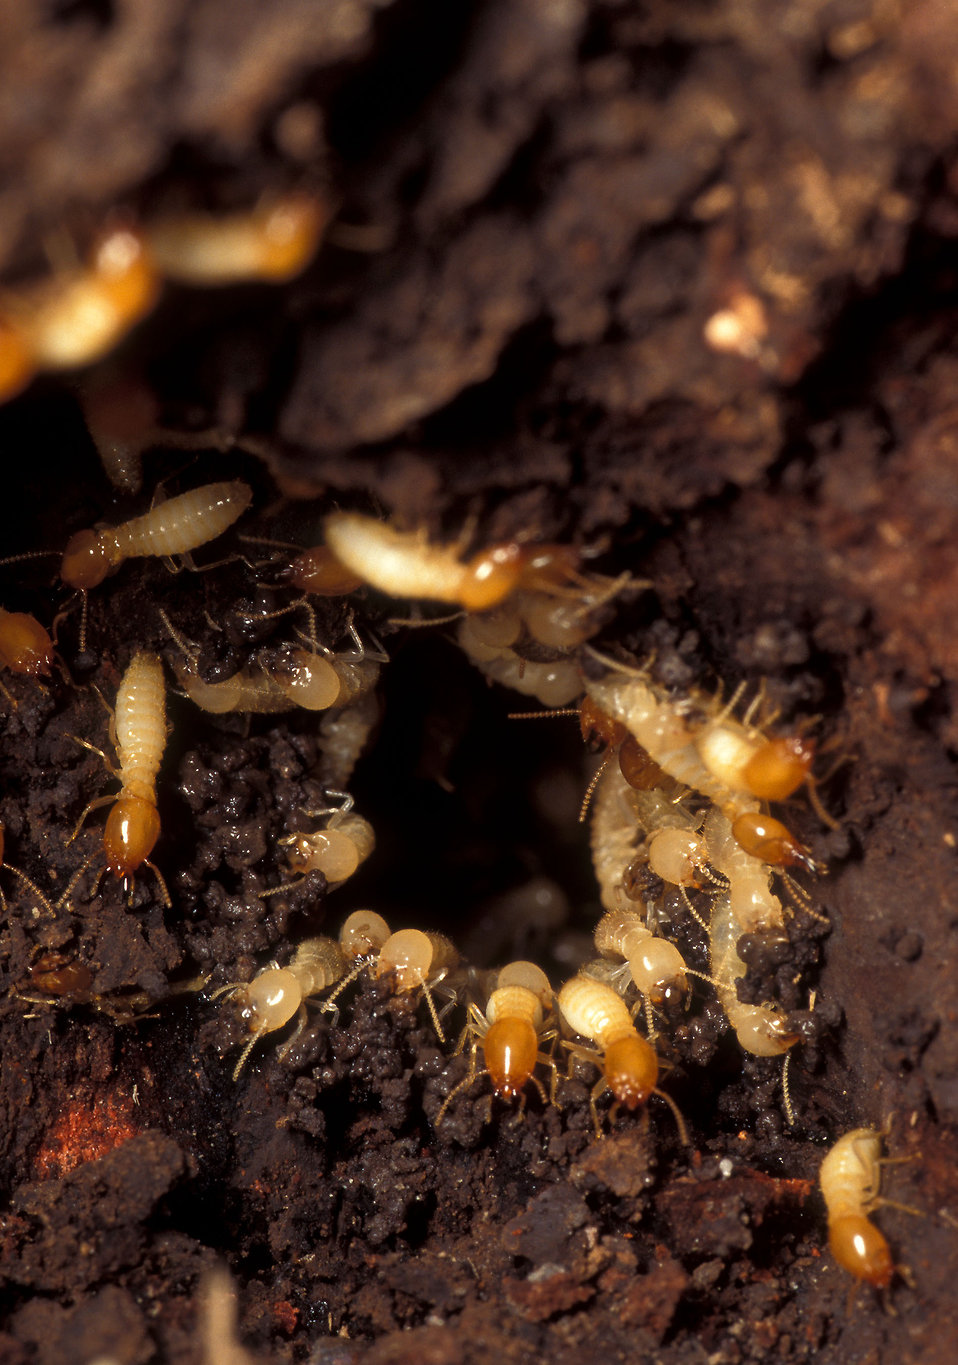 Formosan subterranean termites in a nest : Free Stock Photo